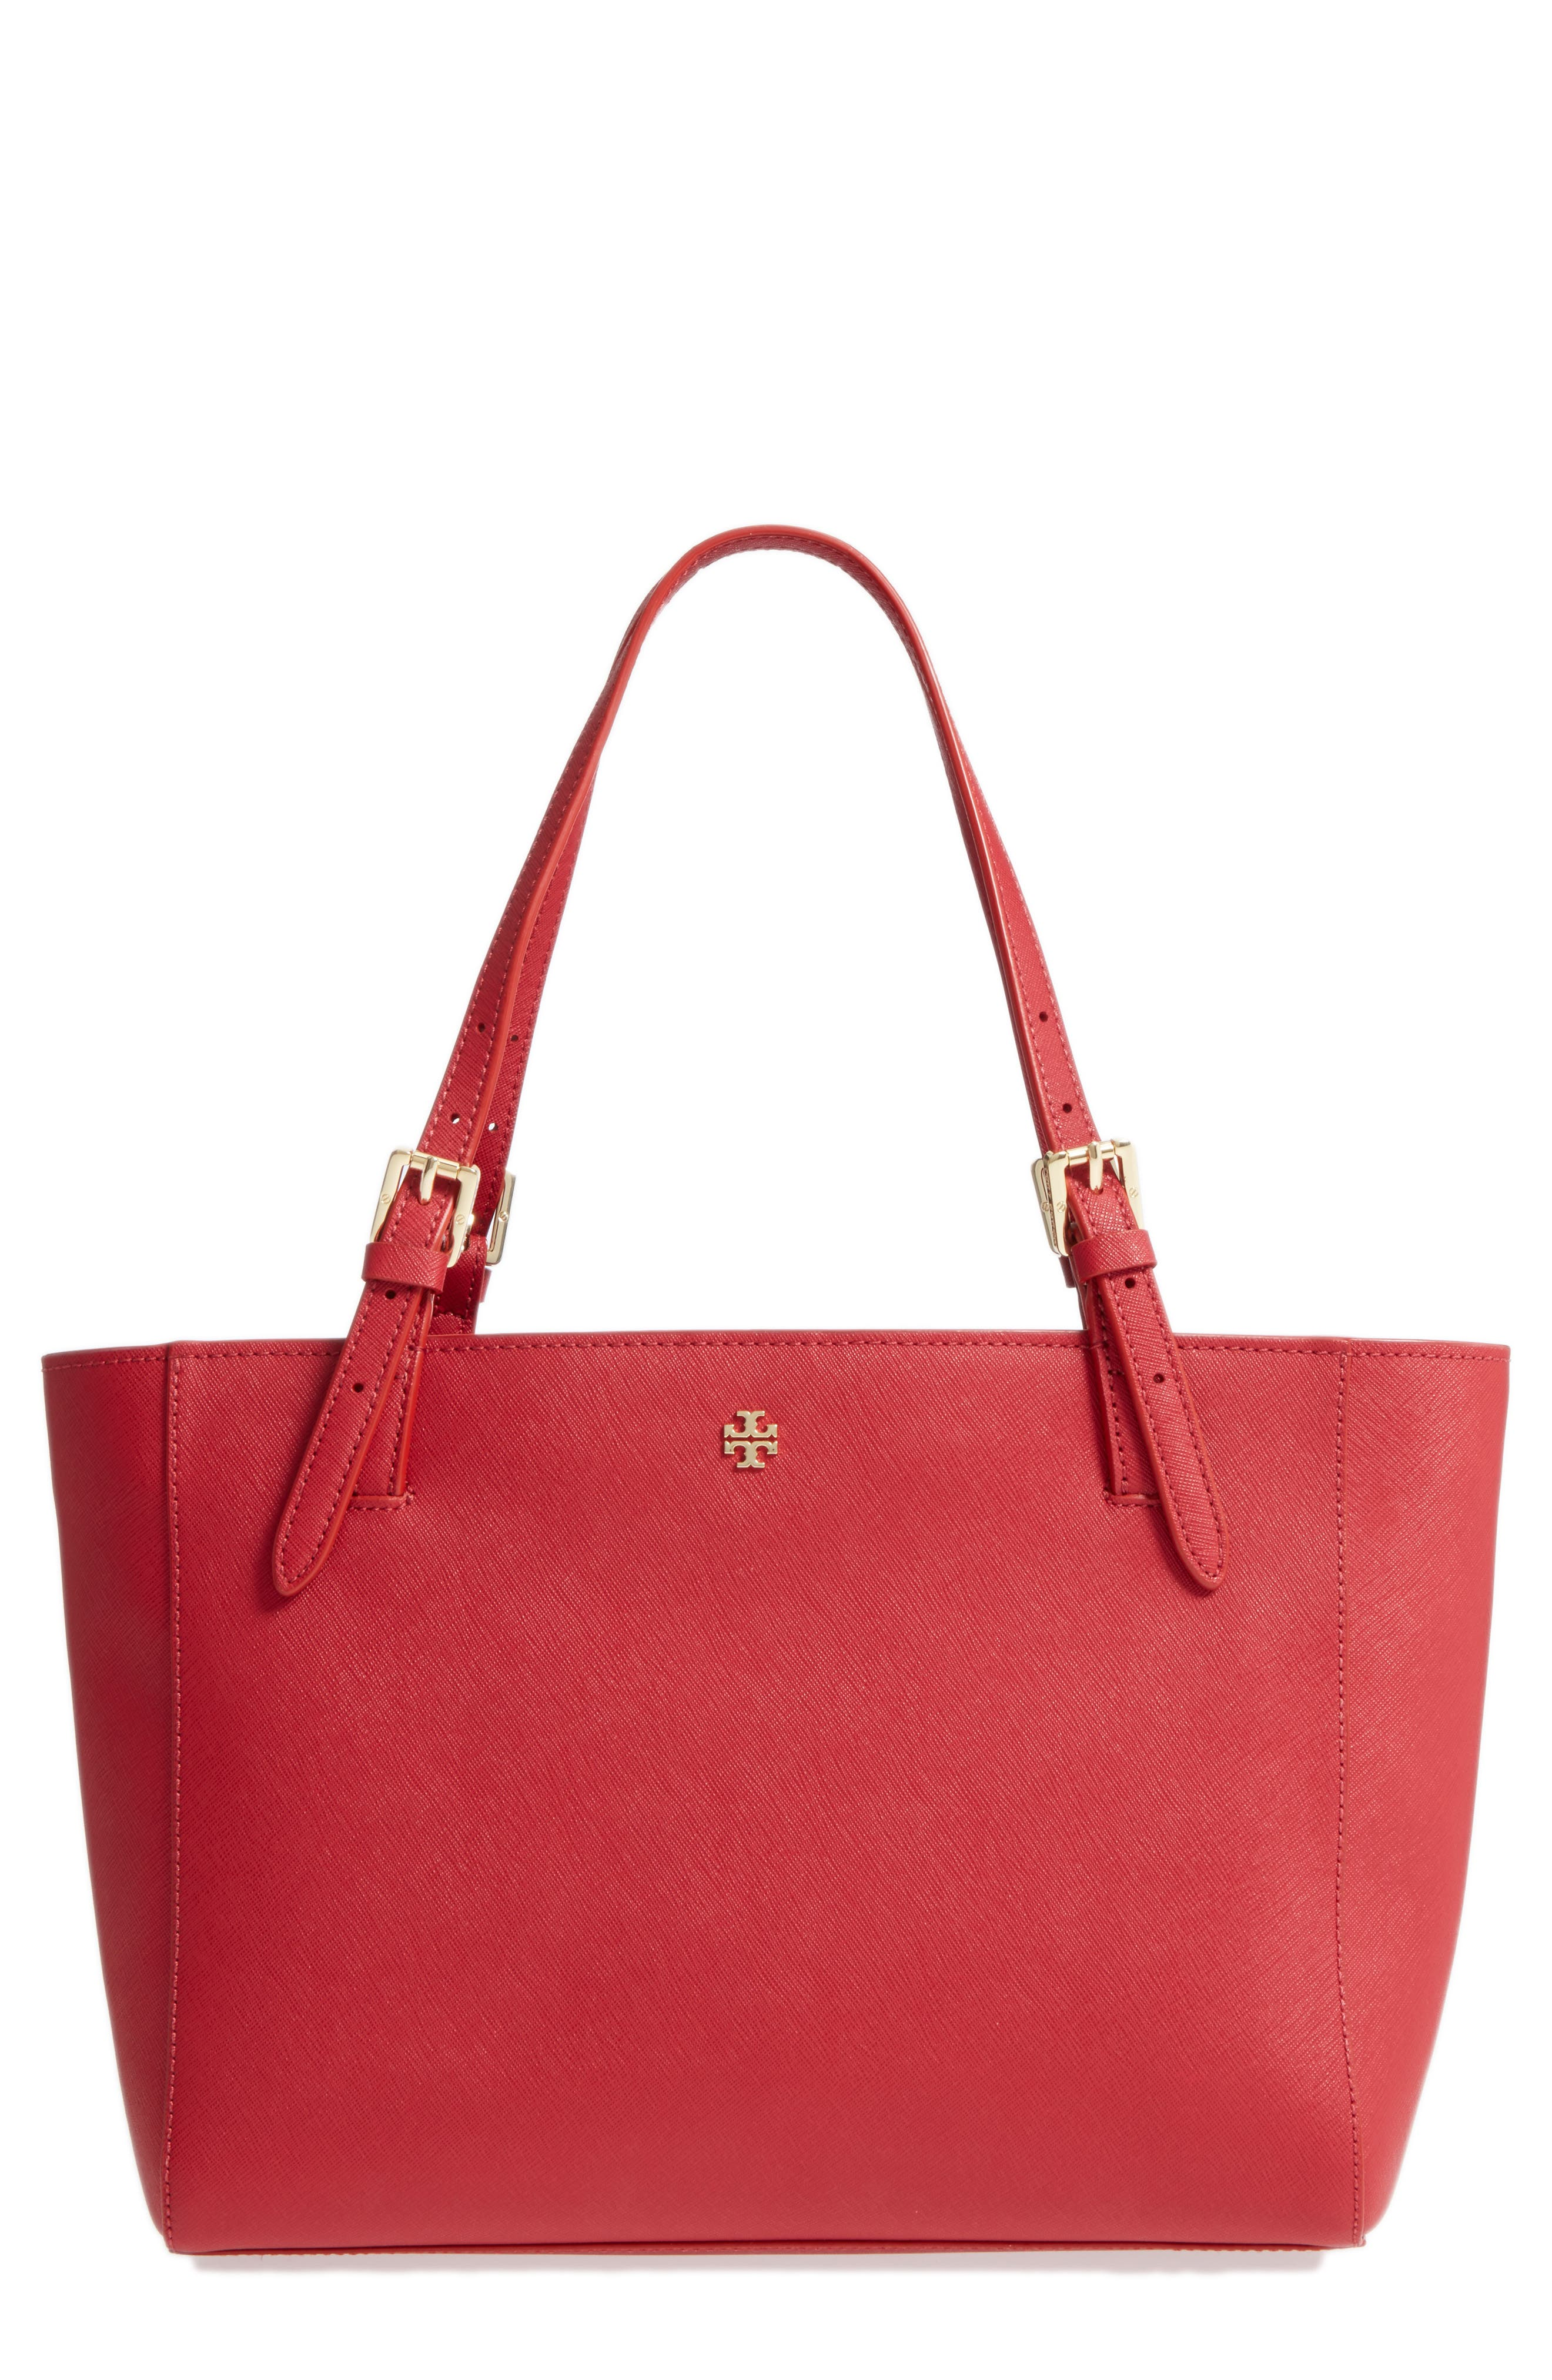 'Small York' Saffiano Leather Buckle Tote,                             Alternate thumbnail 16, color,